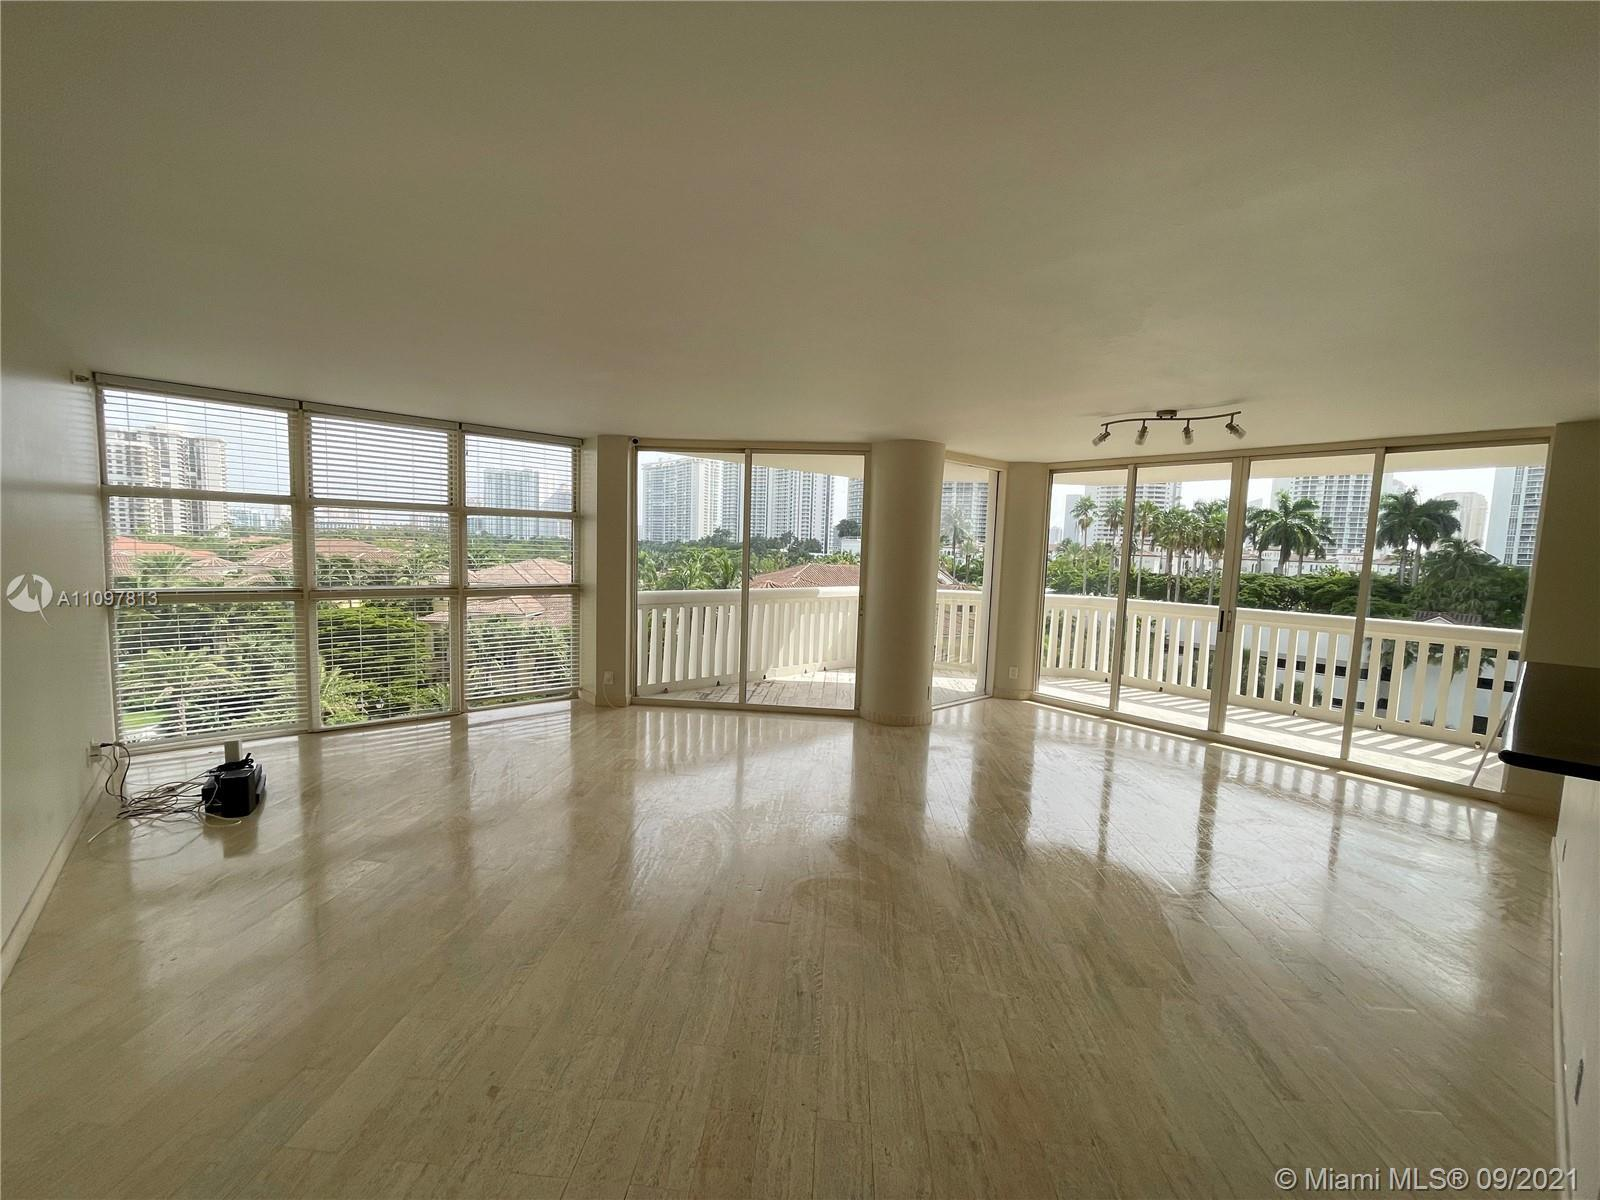 LARGE CORNER APARTMENT ON THE LUXURIOUS WILLIAMS ISLAND. PANORAMIC VIEWS IN ALL DIRECTIONS. 3 BEDROO